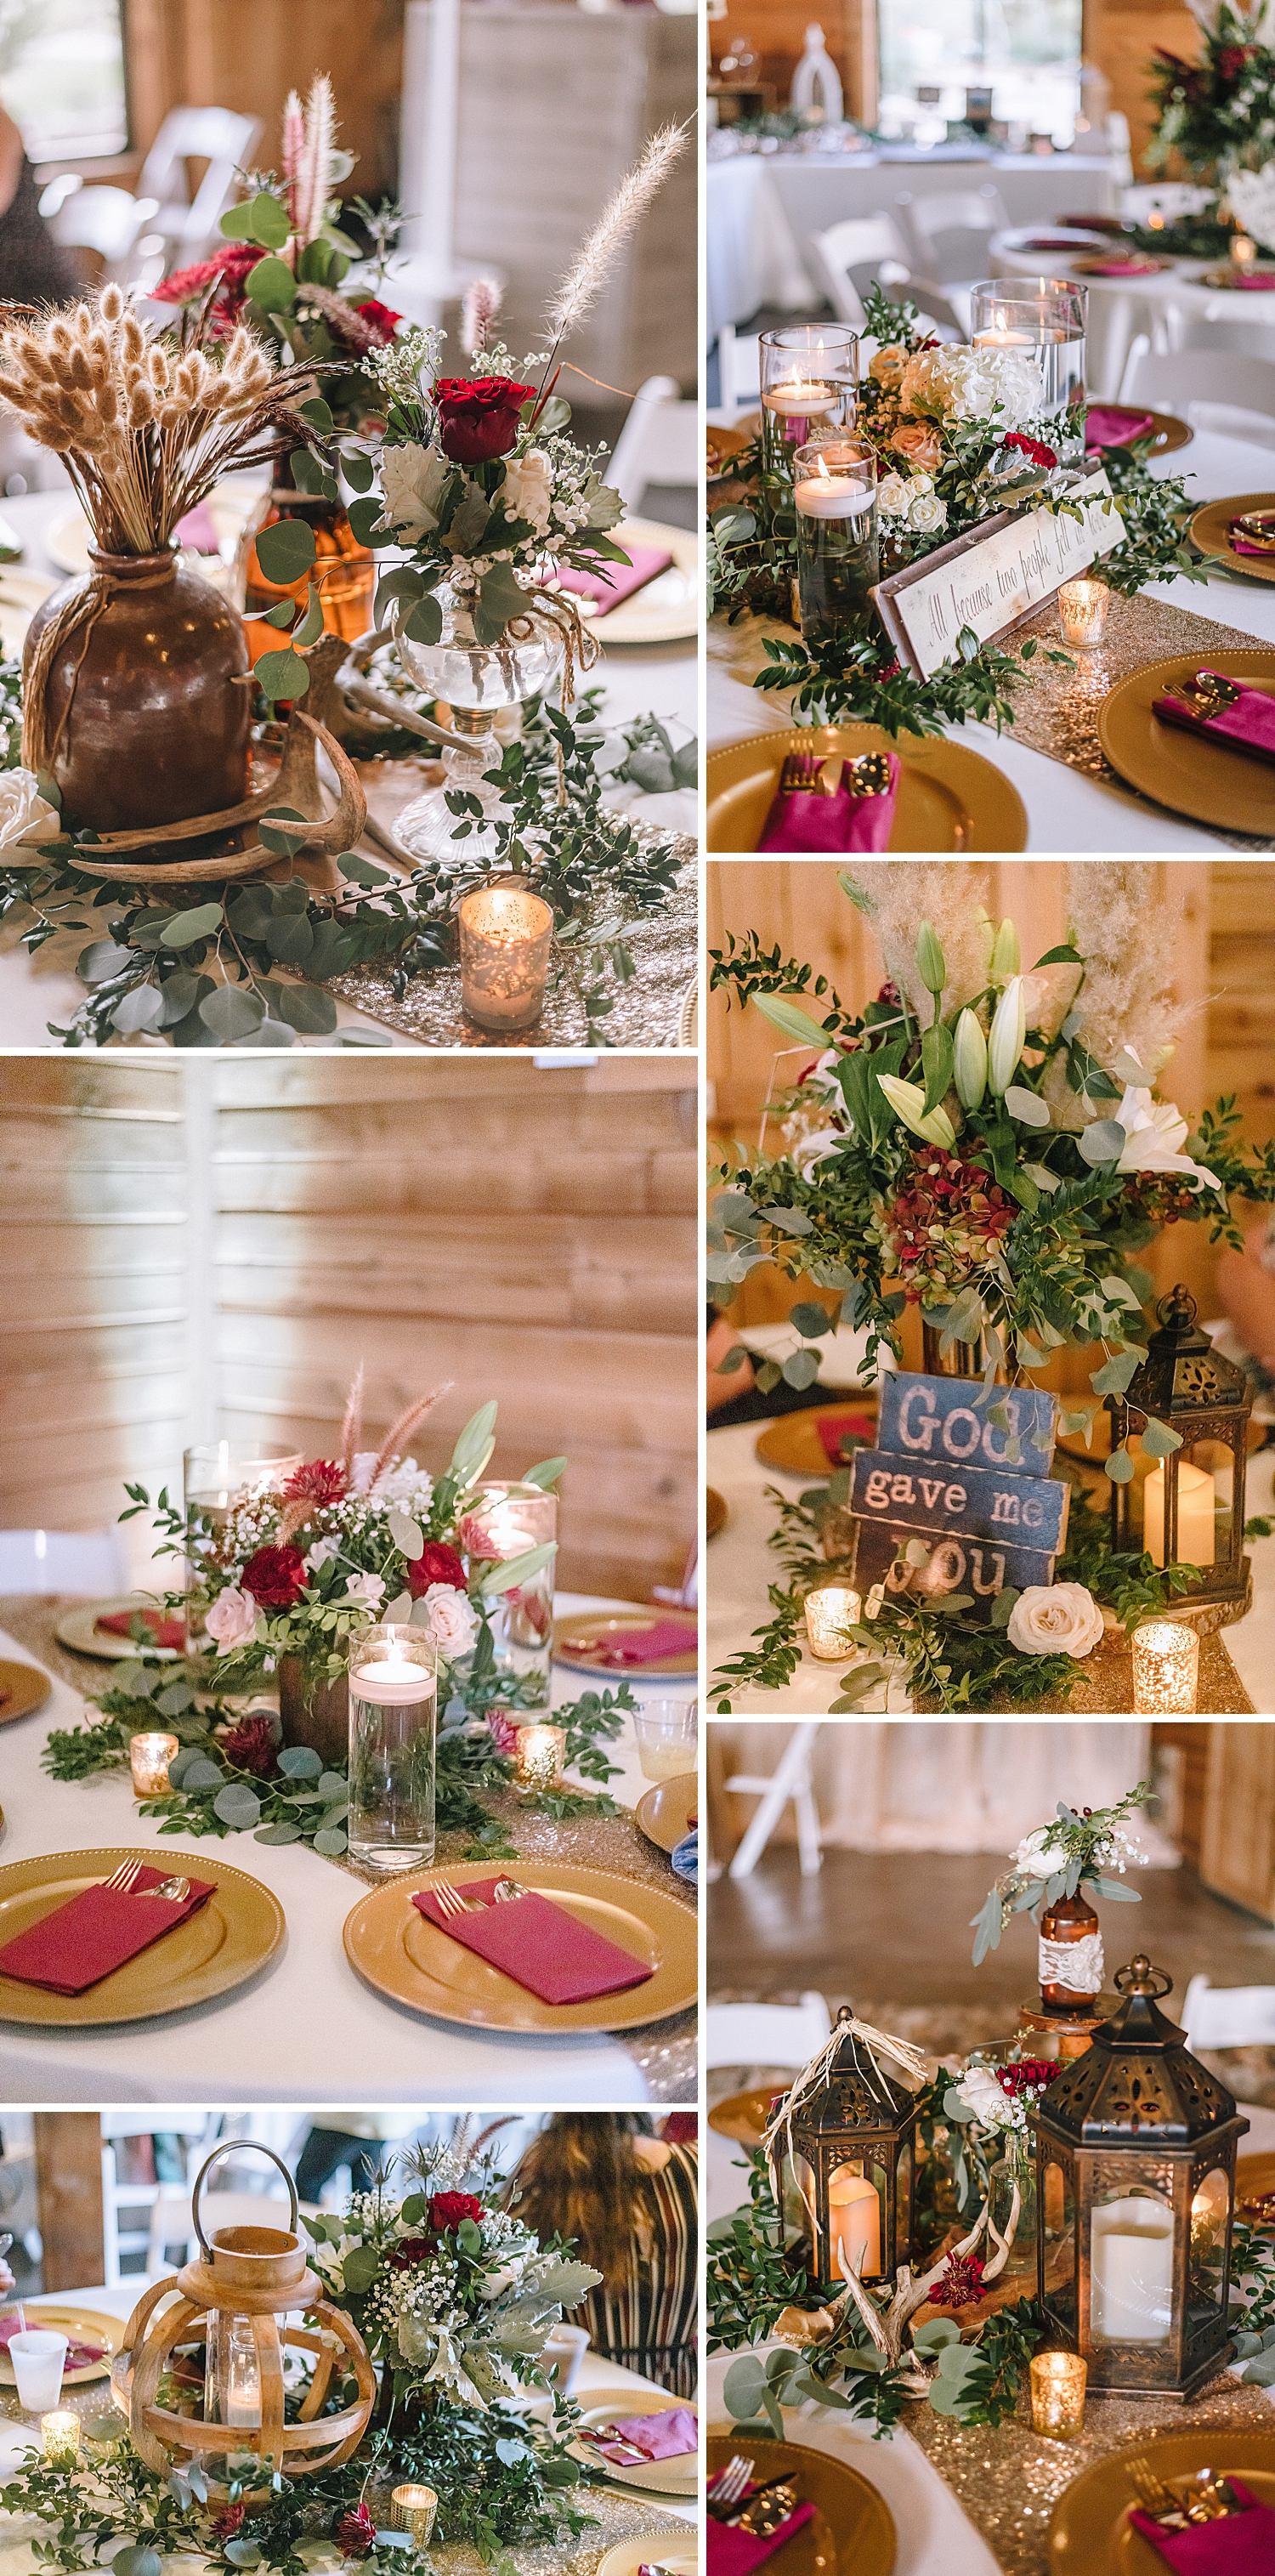 Geronimo-Oaks-Wedding-Venue-Seguin-Texas-Elegant-Navy-Burgundy-Wedding-Carly-Barton-Photography_0007.jpg